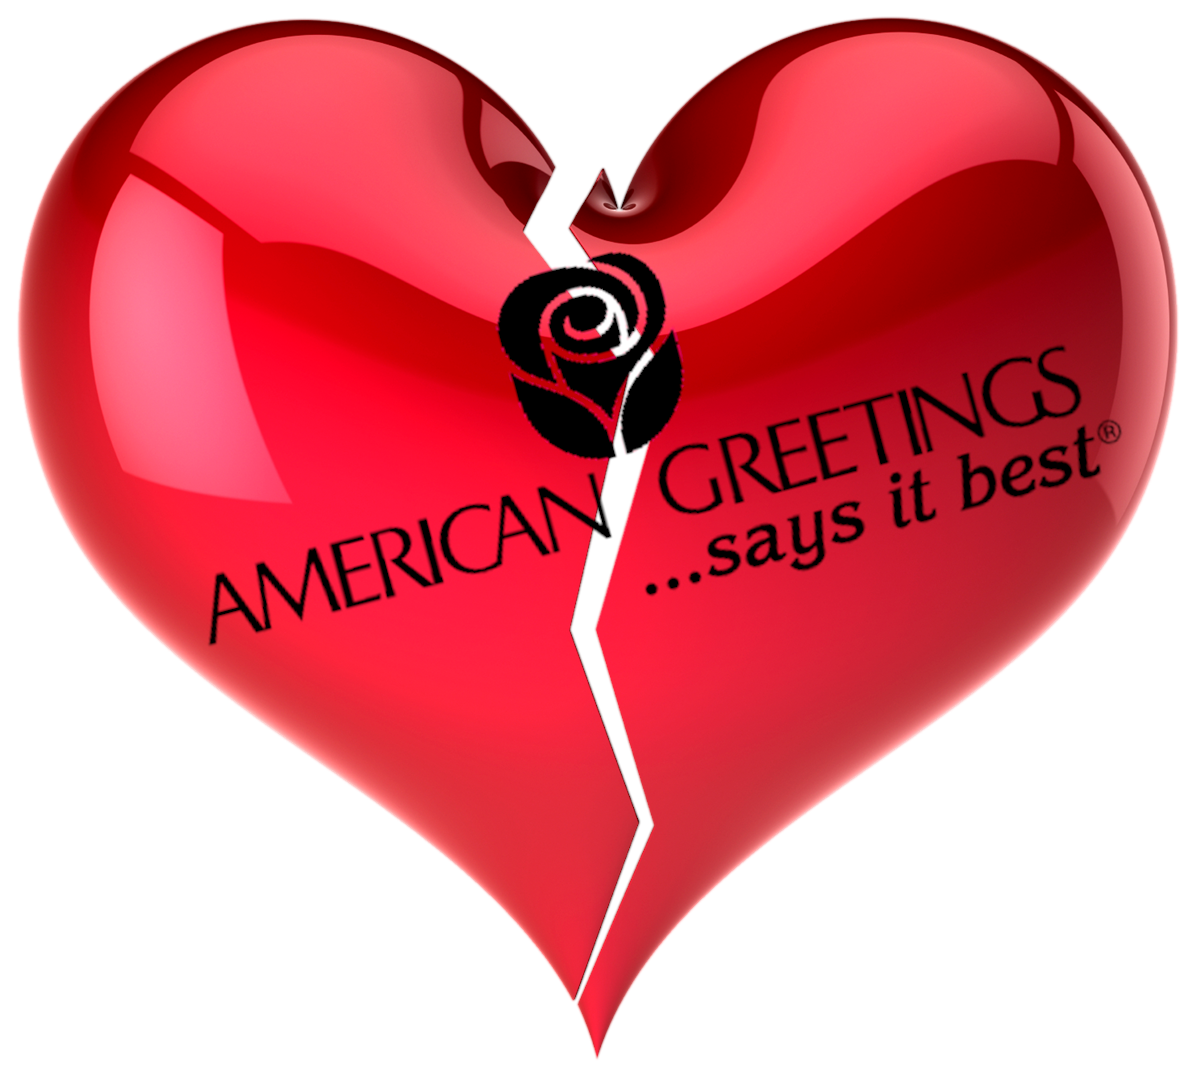 Am I Next? American Greetings to close Bardstown, Kentucky plant. 450 employees to be laid off.